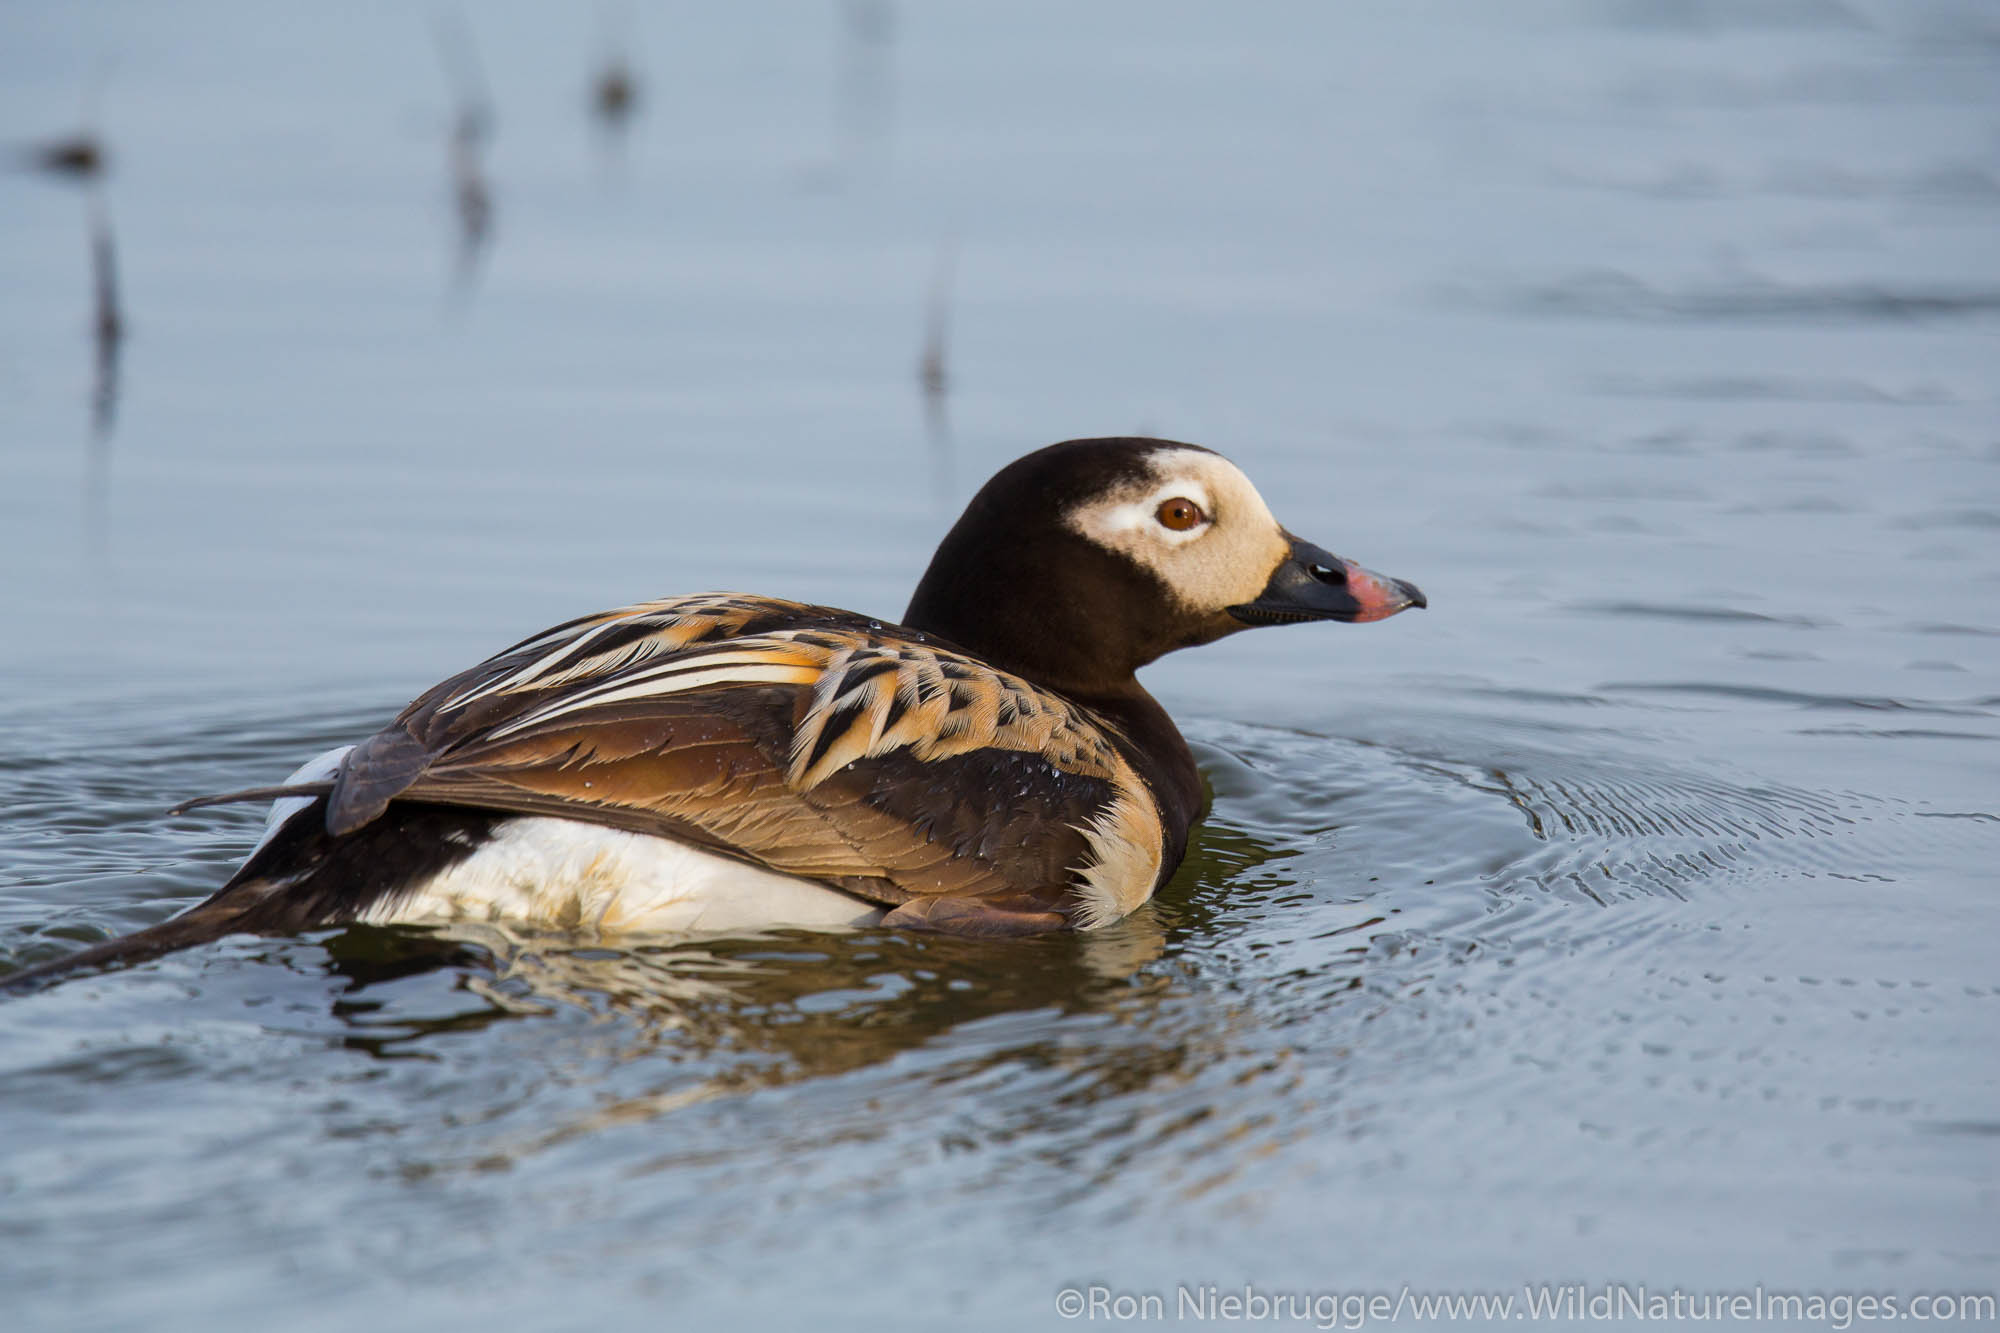 Long-tailed duck (Clangula hyemalis), once known as oldsquaw, Arctic Alaska.